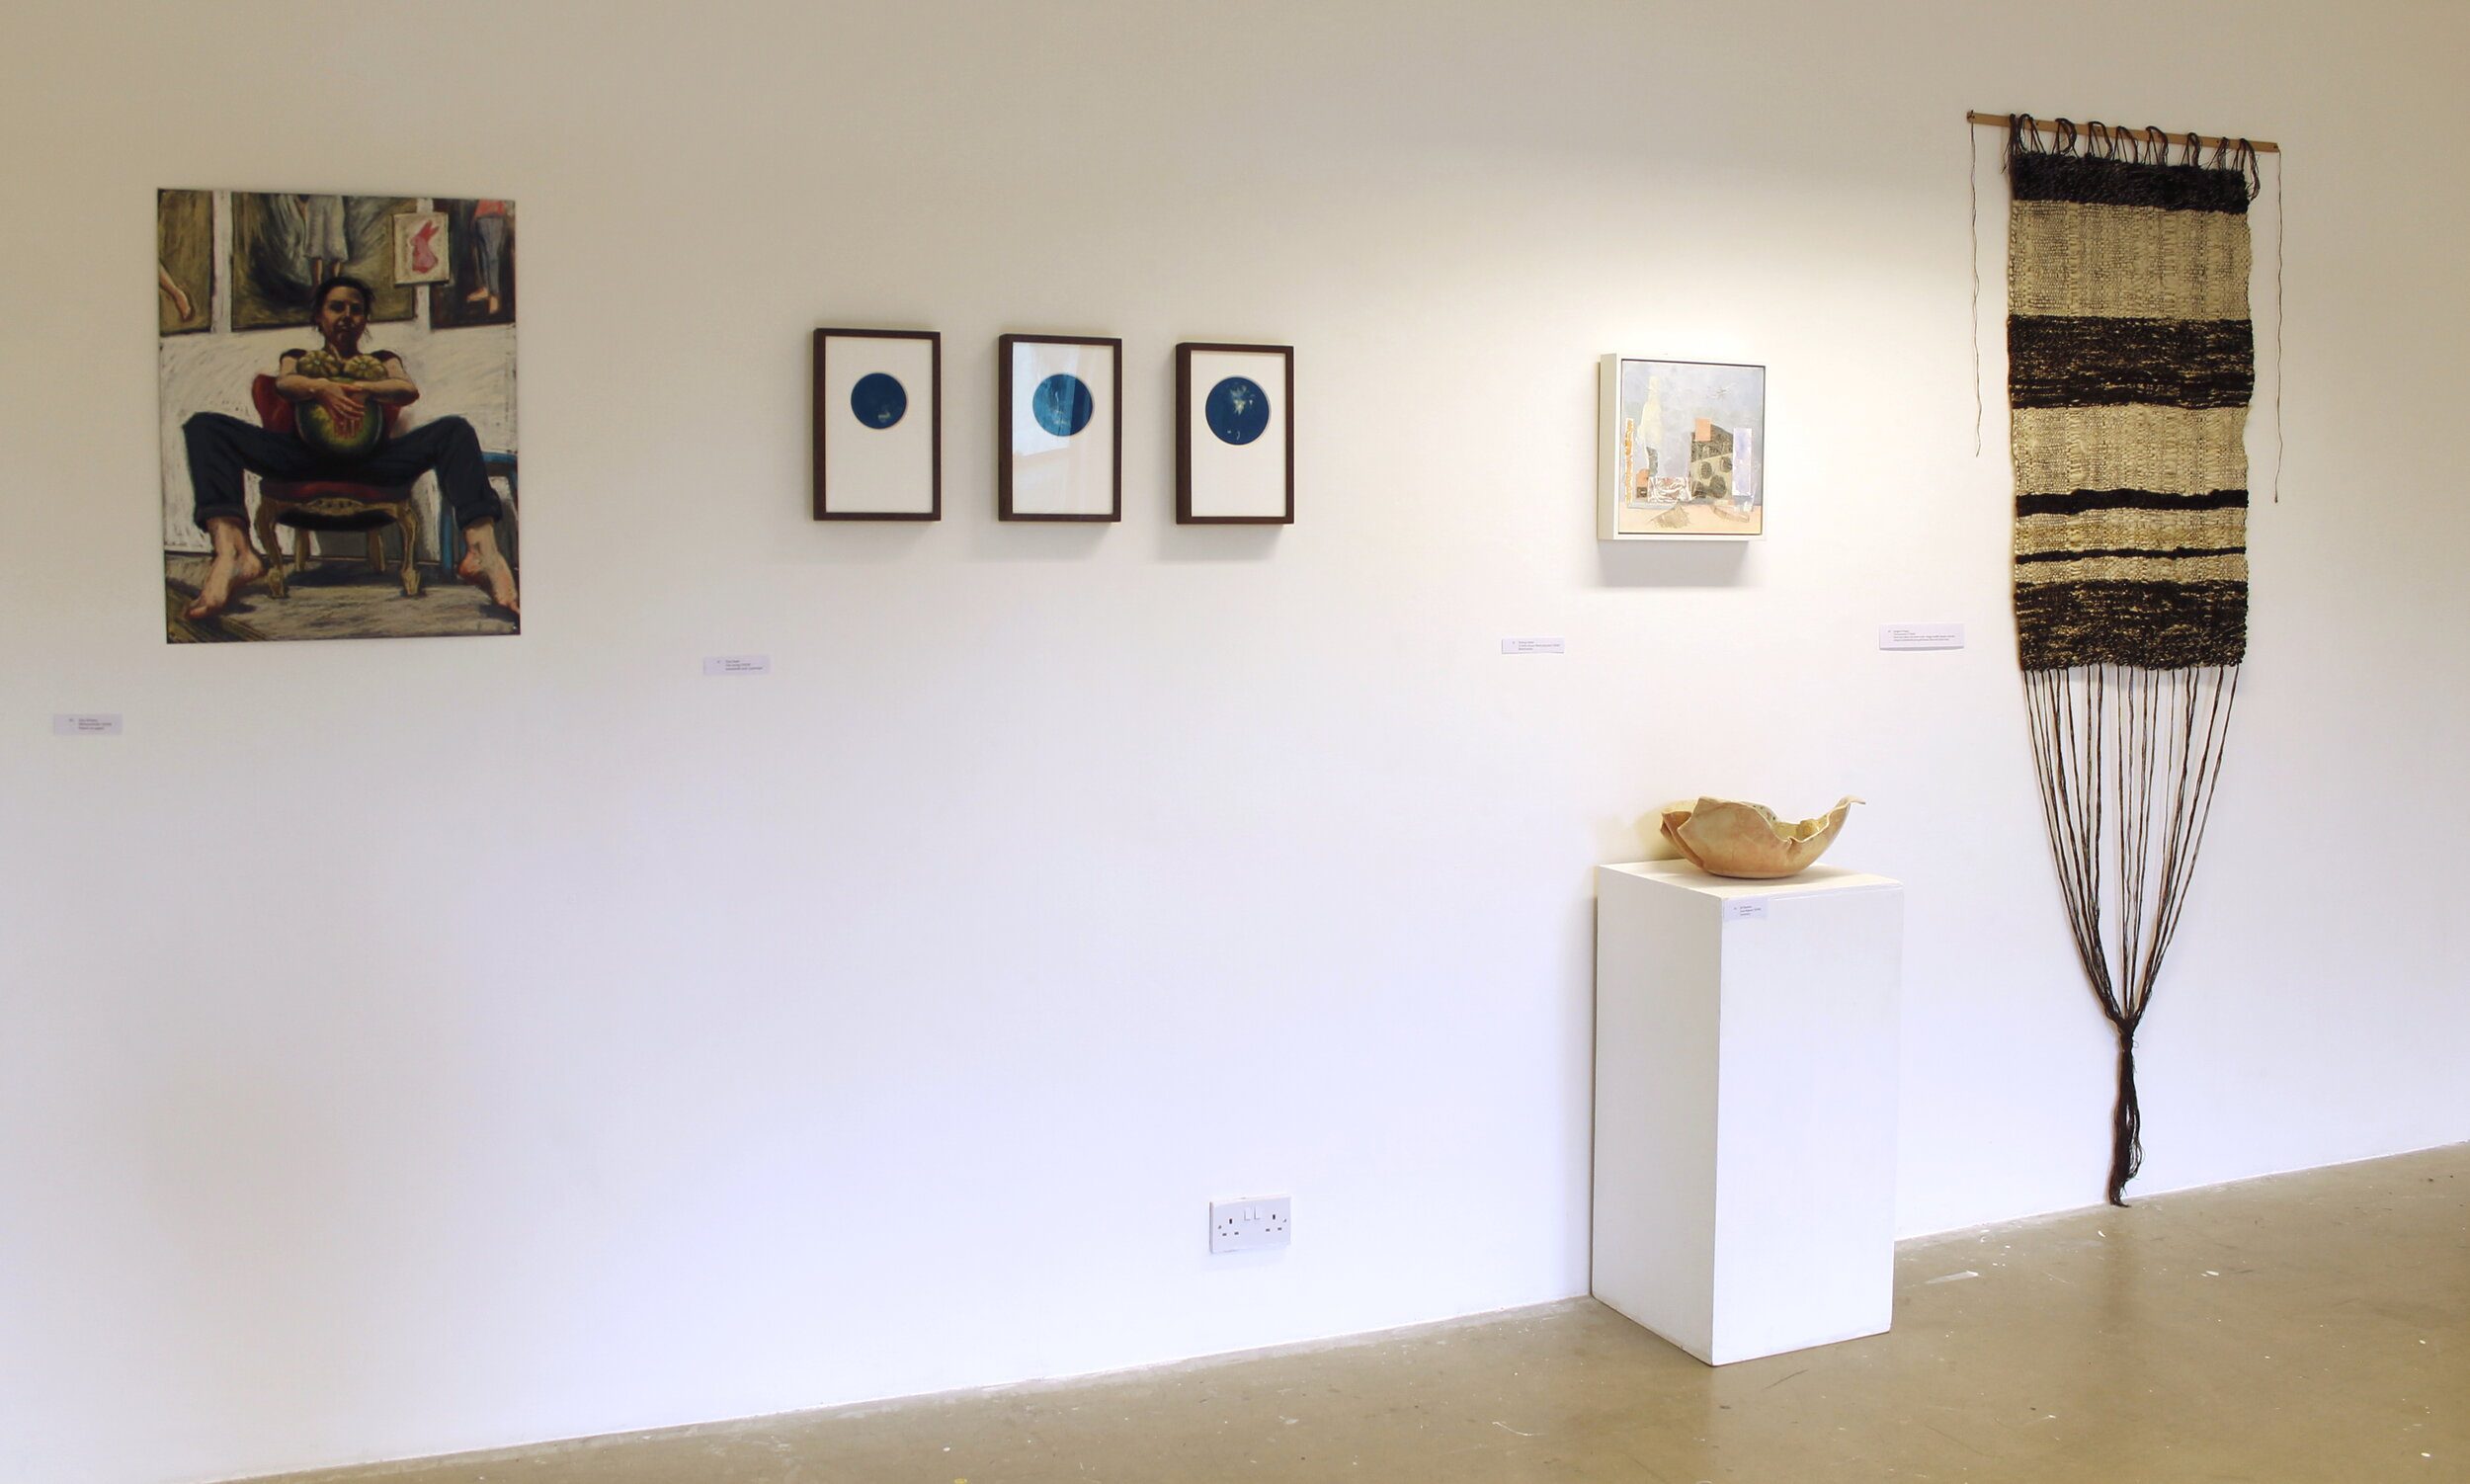 'Meloncholia' hanging alongside Toni Pepe, Victoria Smits, Jill Skulina and Imogen Di Sapia. Installed as part of 're: birth' 28.09.19-12.10.19. Photo by Joan Doyle.